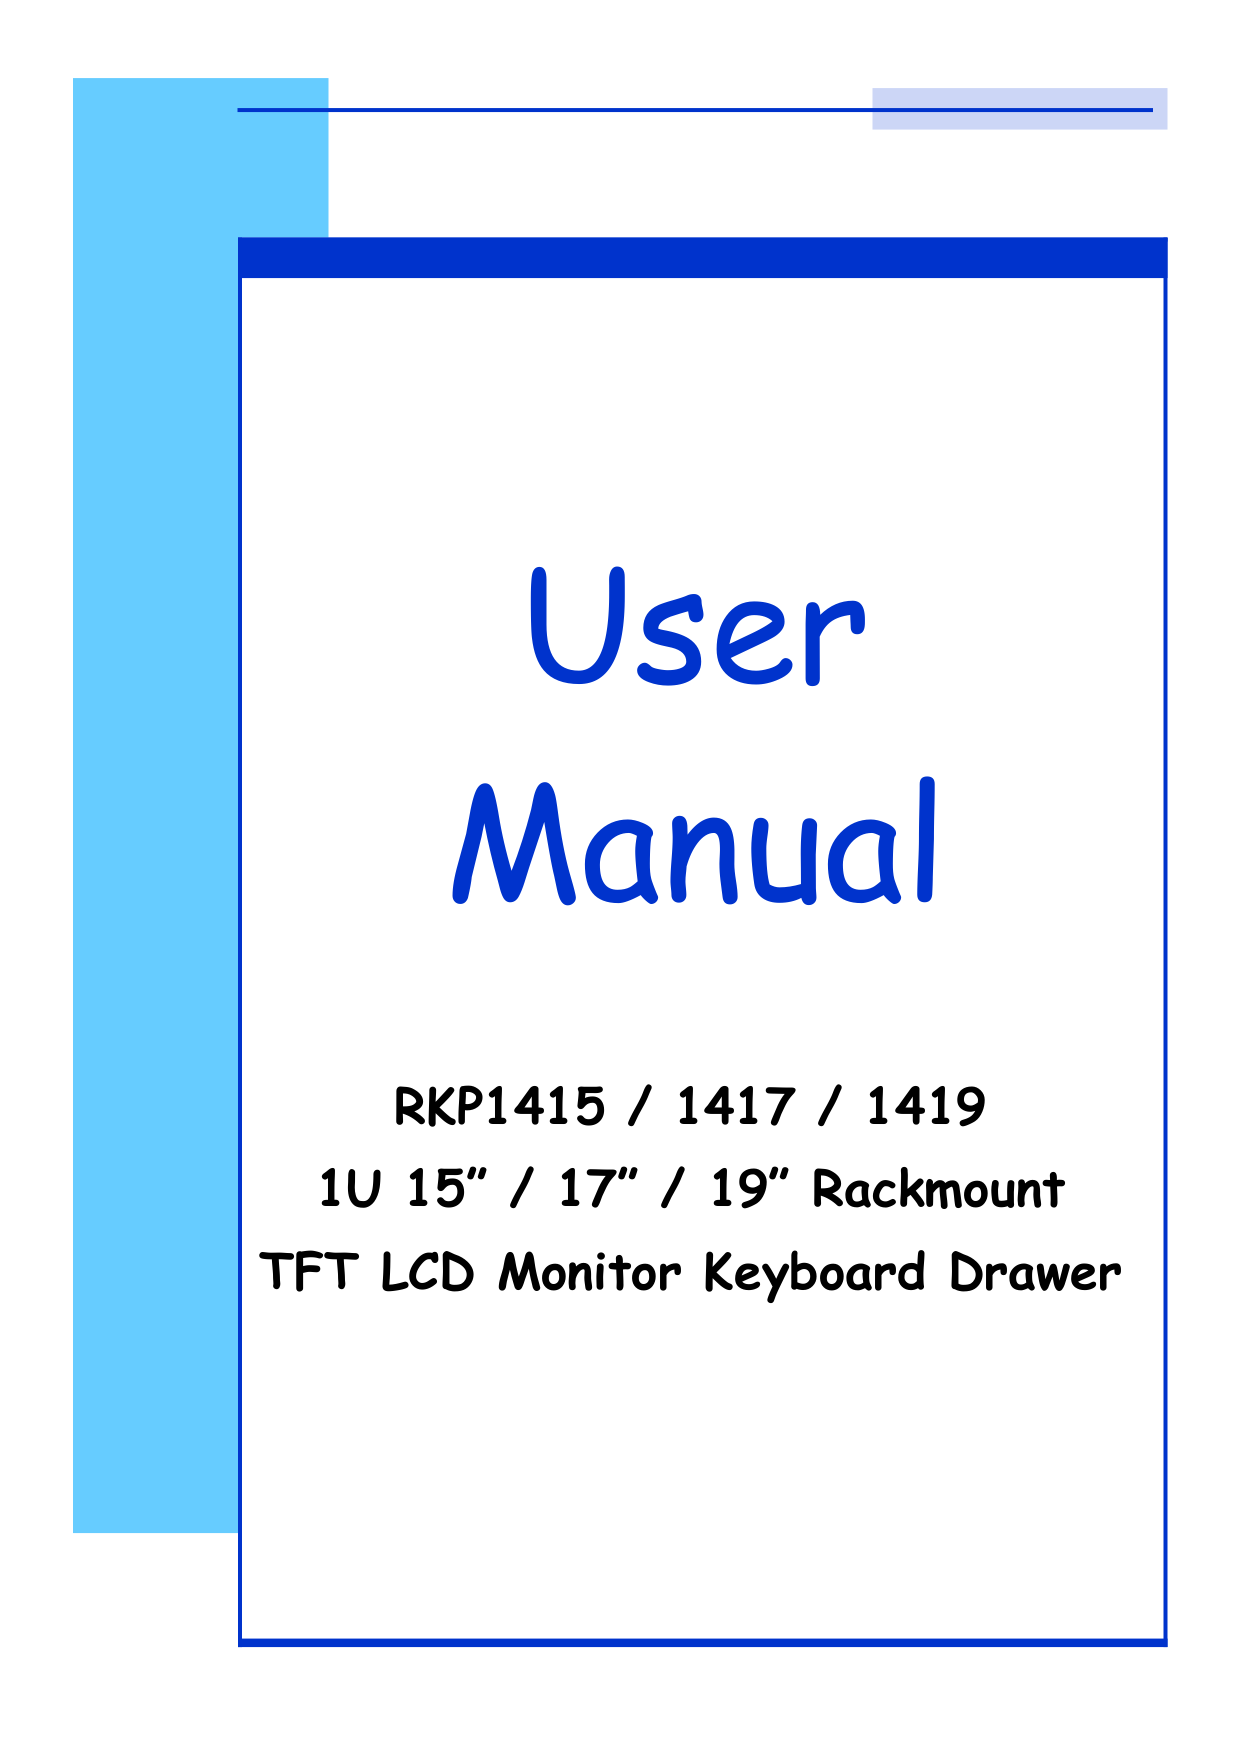 pdf for I-Tech Other RKP1419 Keyboard Drawers manual